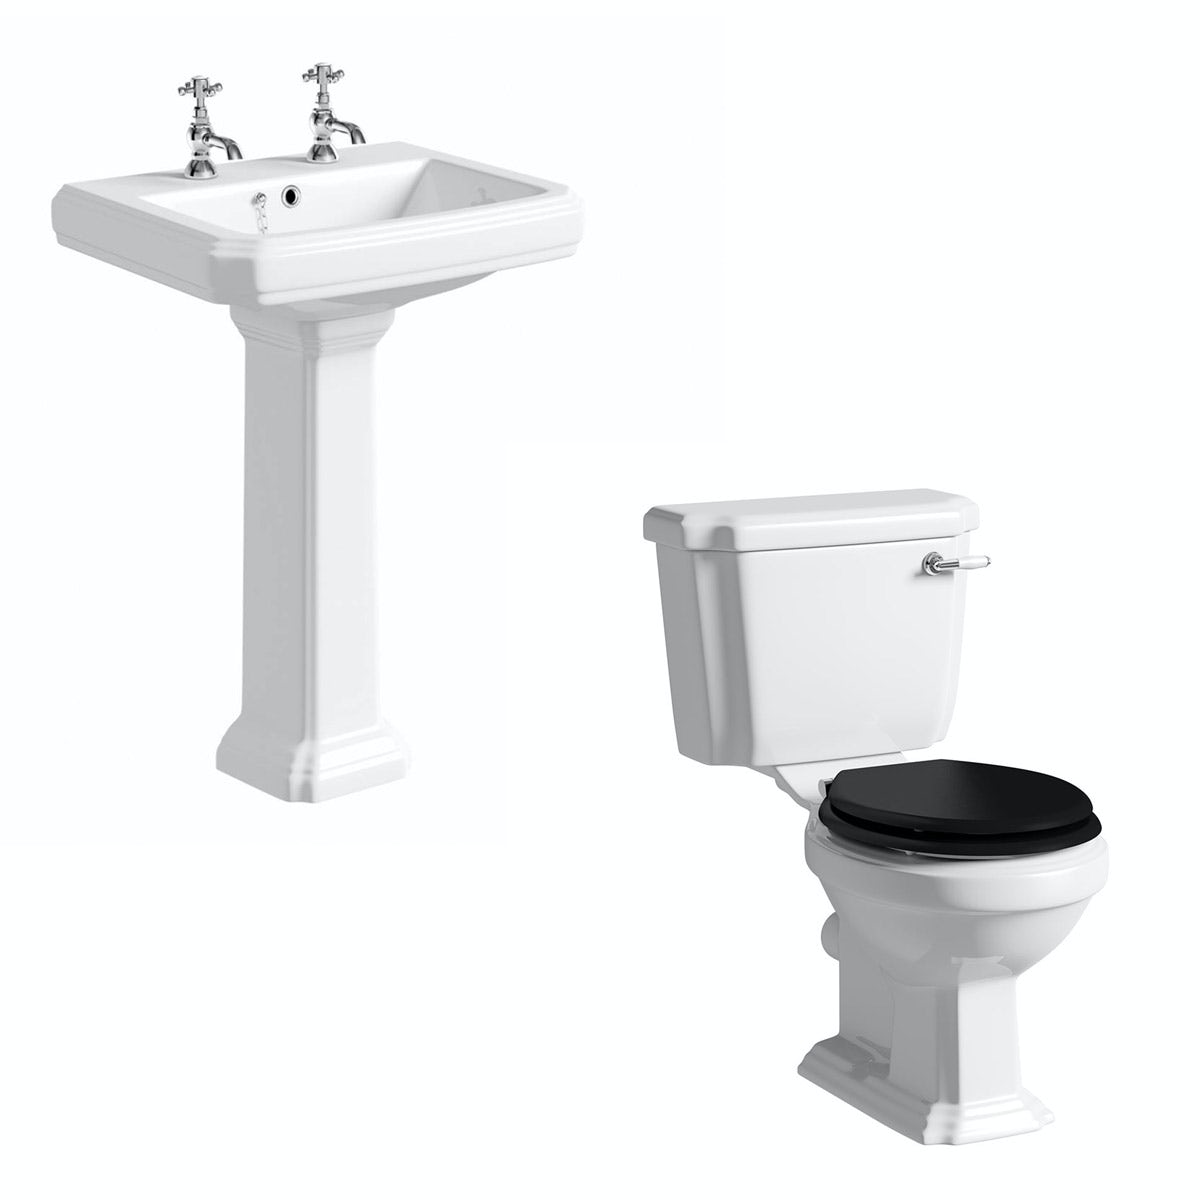 The Bath Co. Dulwich cloakroom suite with black seat and full pedestal basin 600mm